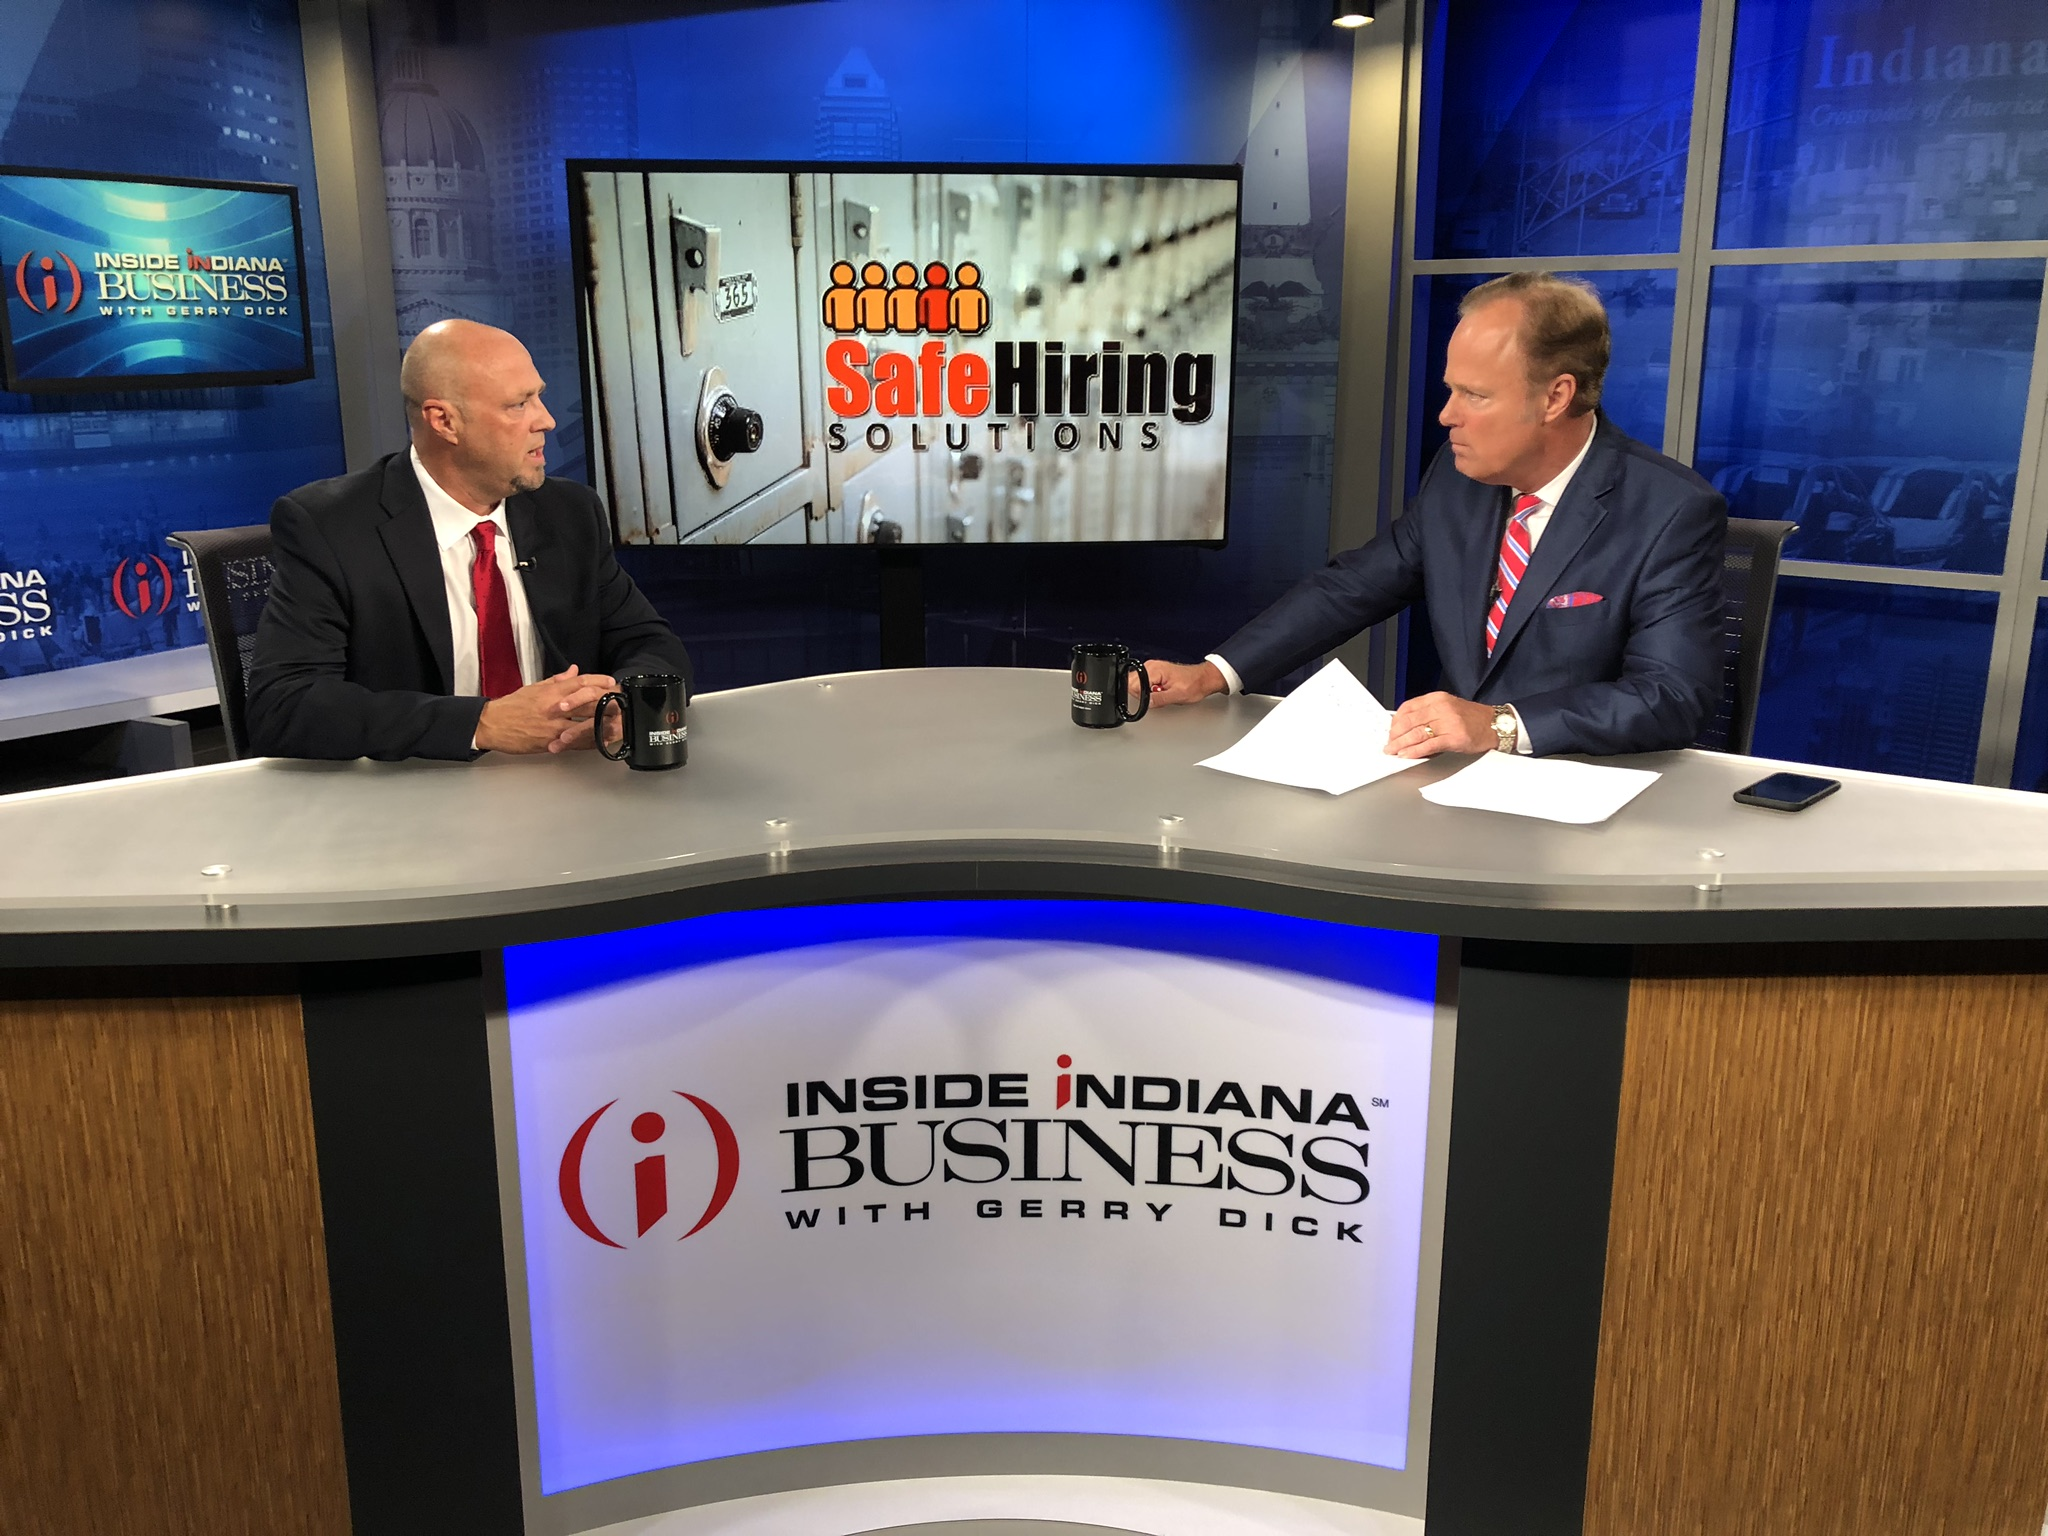 CEO Mike McCarty Discusses School Safety  Click Here to Watch